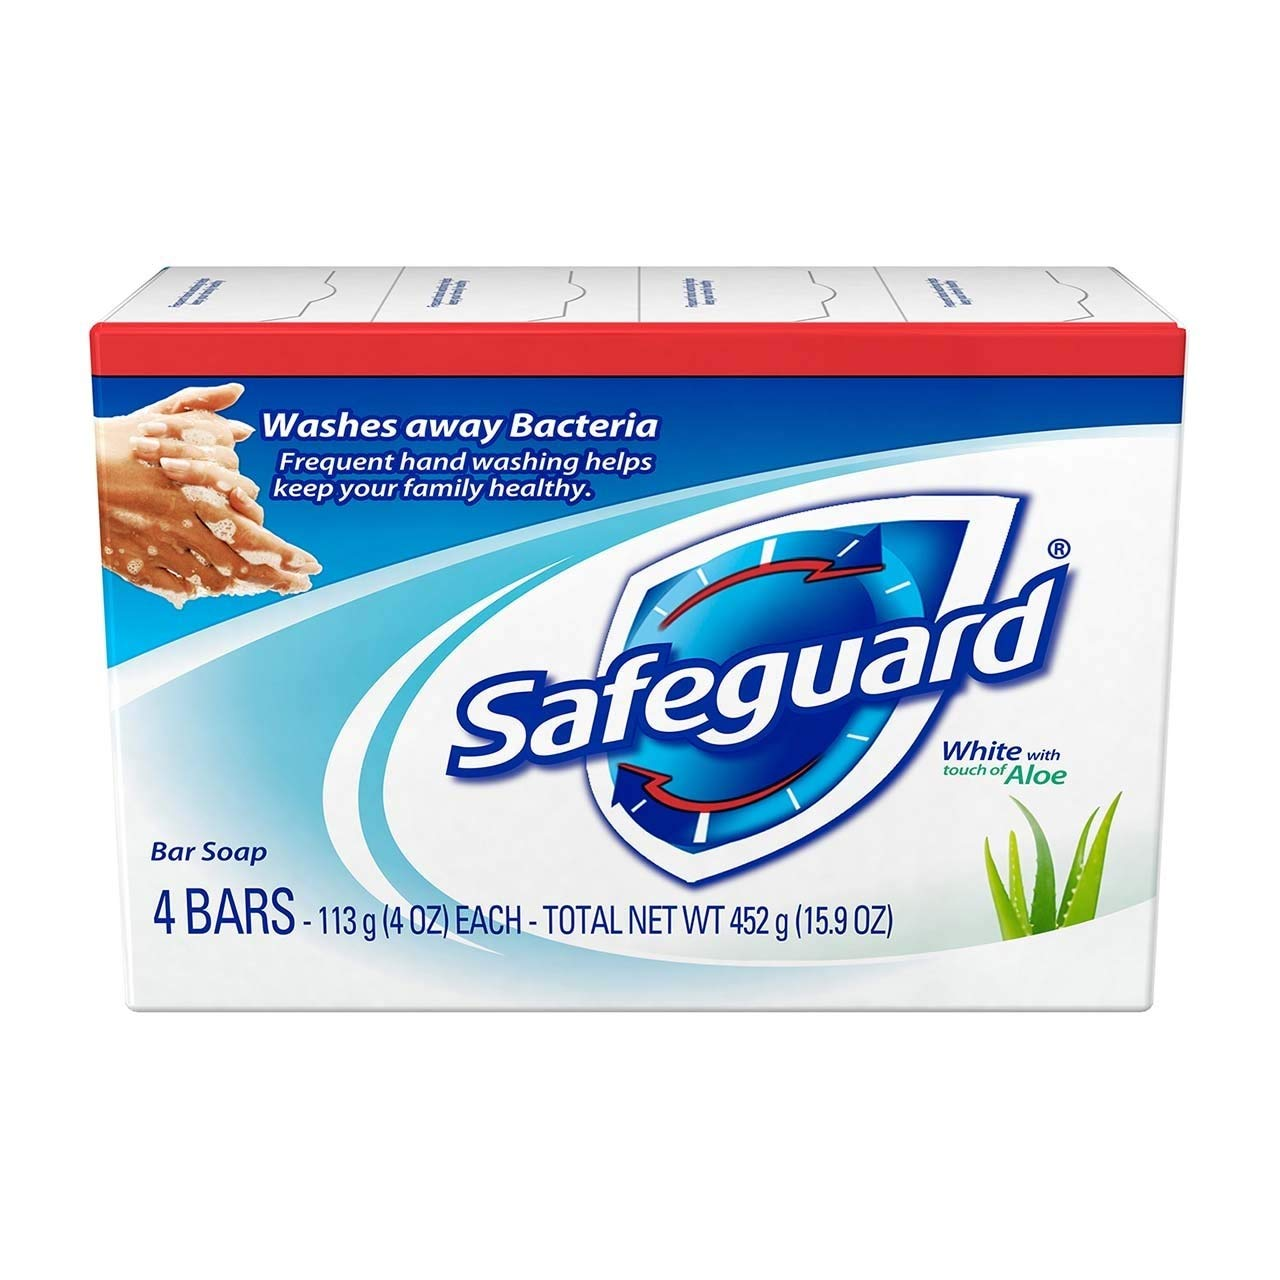 Safeguard Antibacterial Deodorant Soap White with Aloe 4 oz bars, 4ea (Pack of 5)